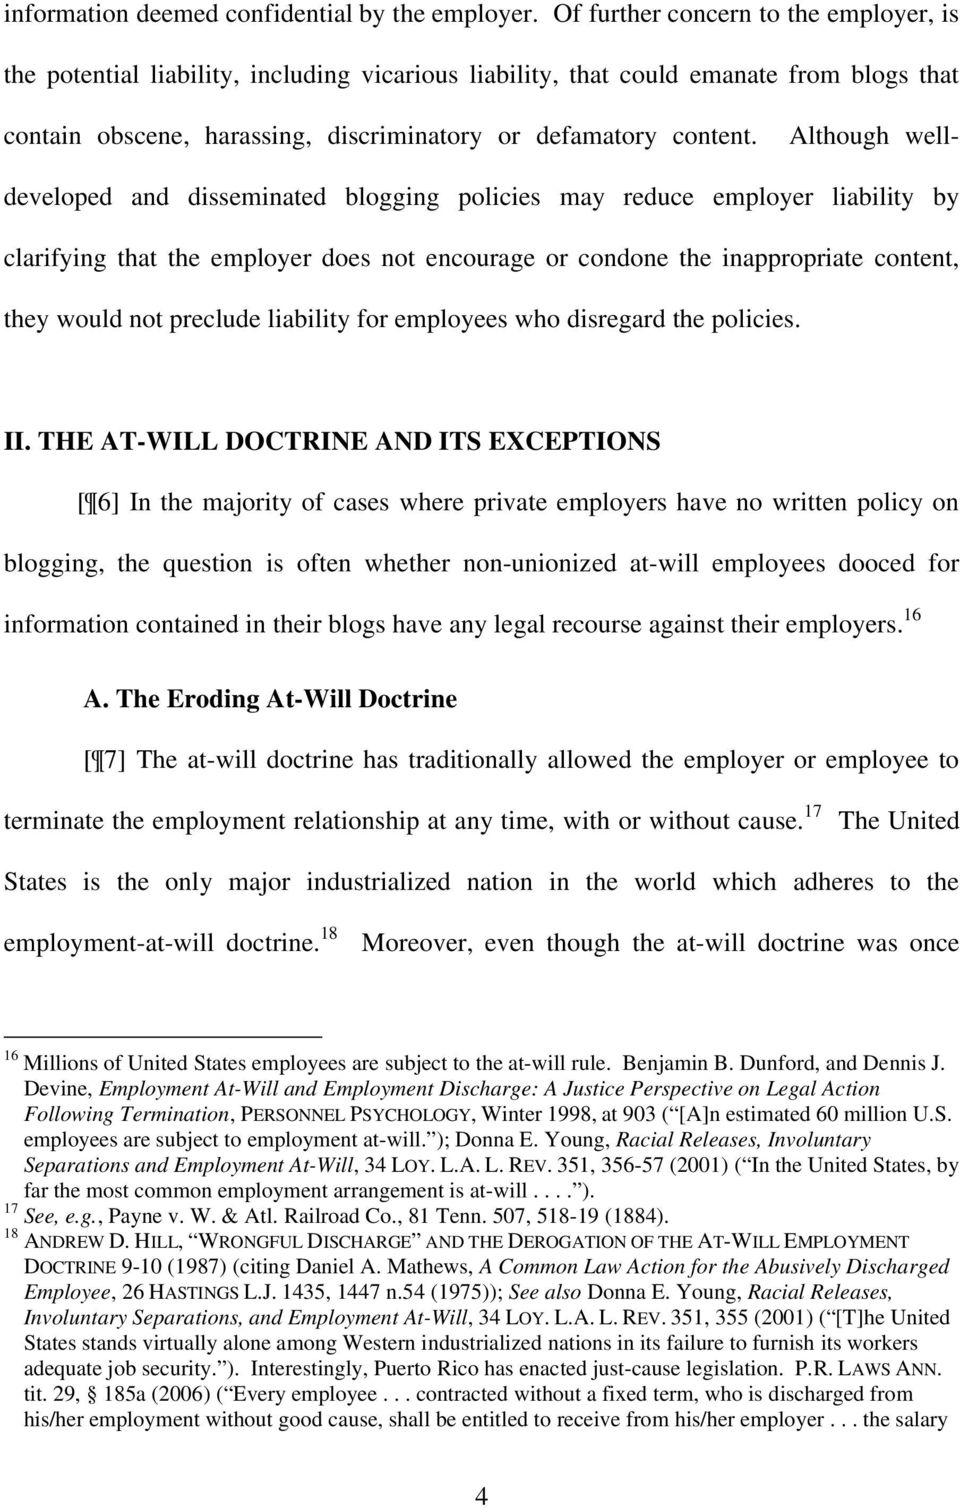 Although welldeveloped and disseminated blogging policies may reduce employer liability by clarifying that the employer does not encourage or condone the inappropriate content, they would not